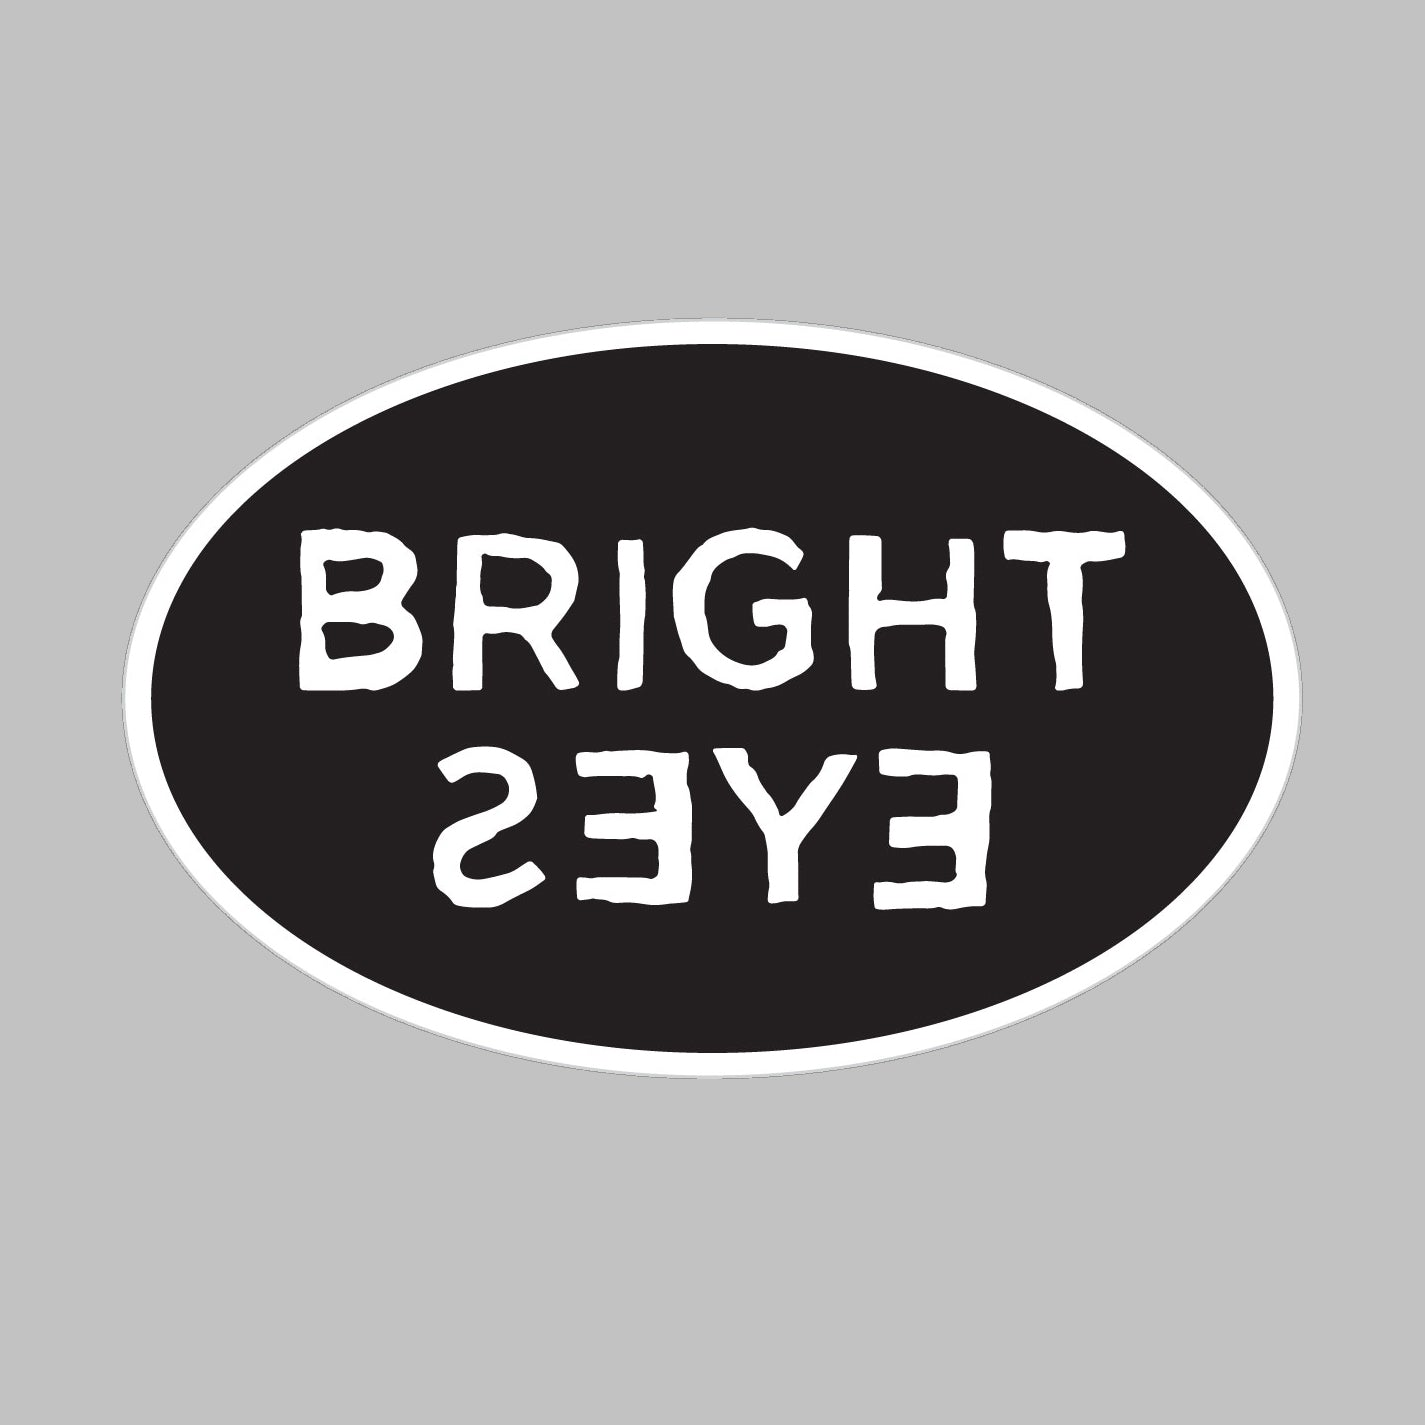 Bright Eyes | Patch 1